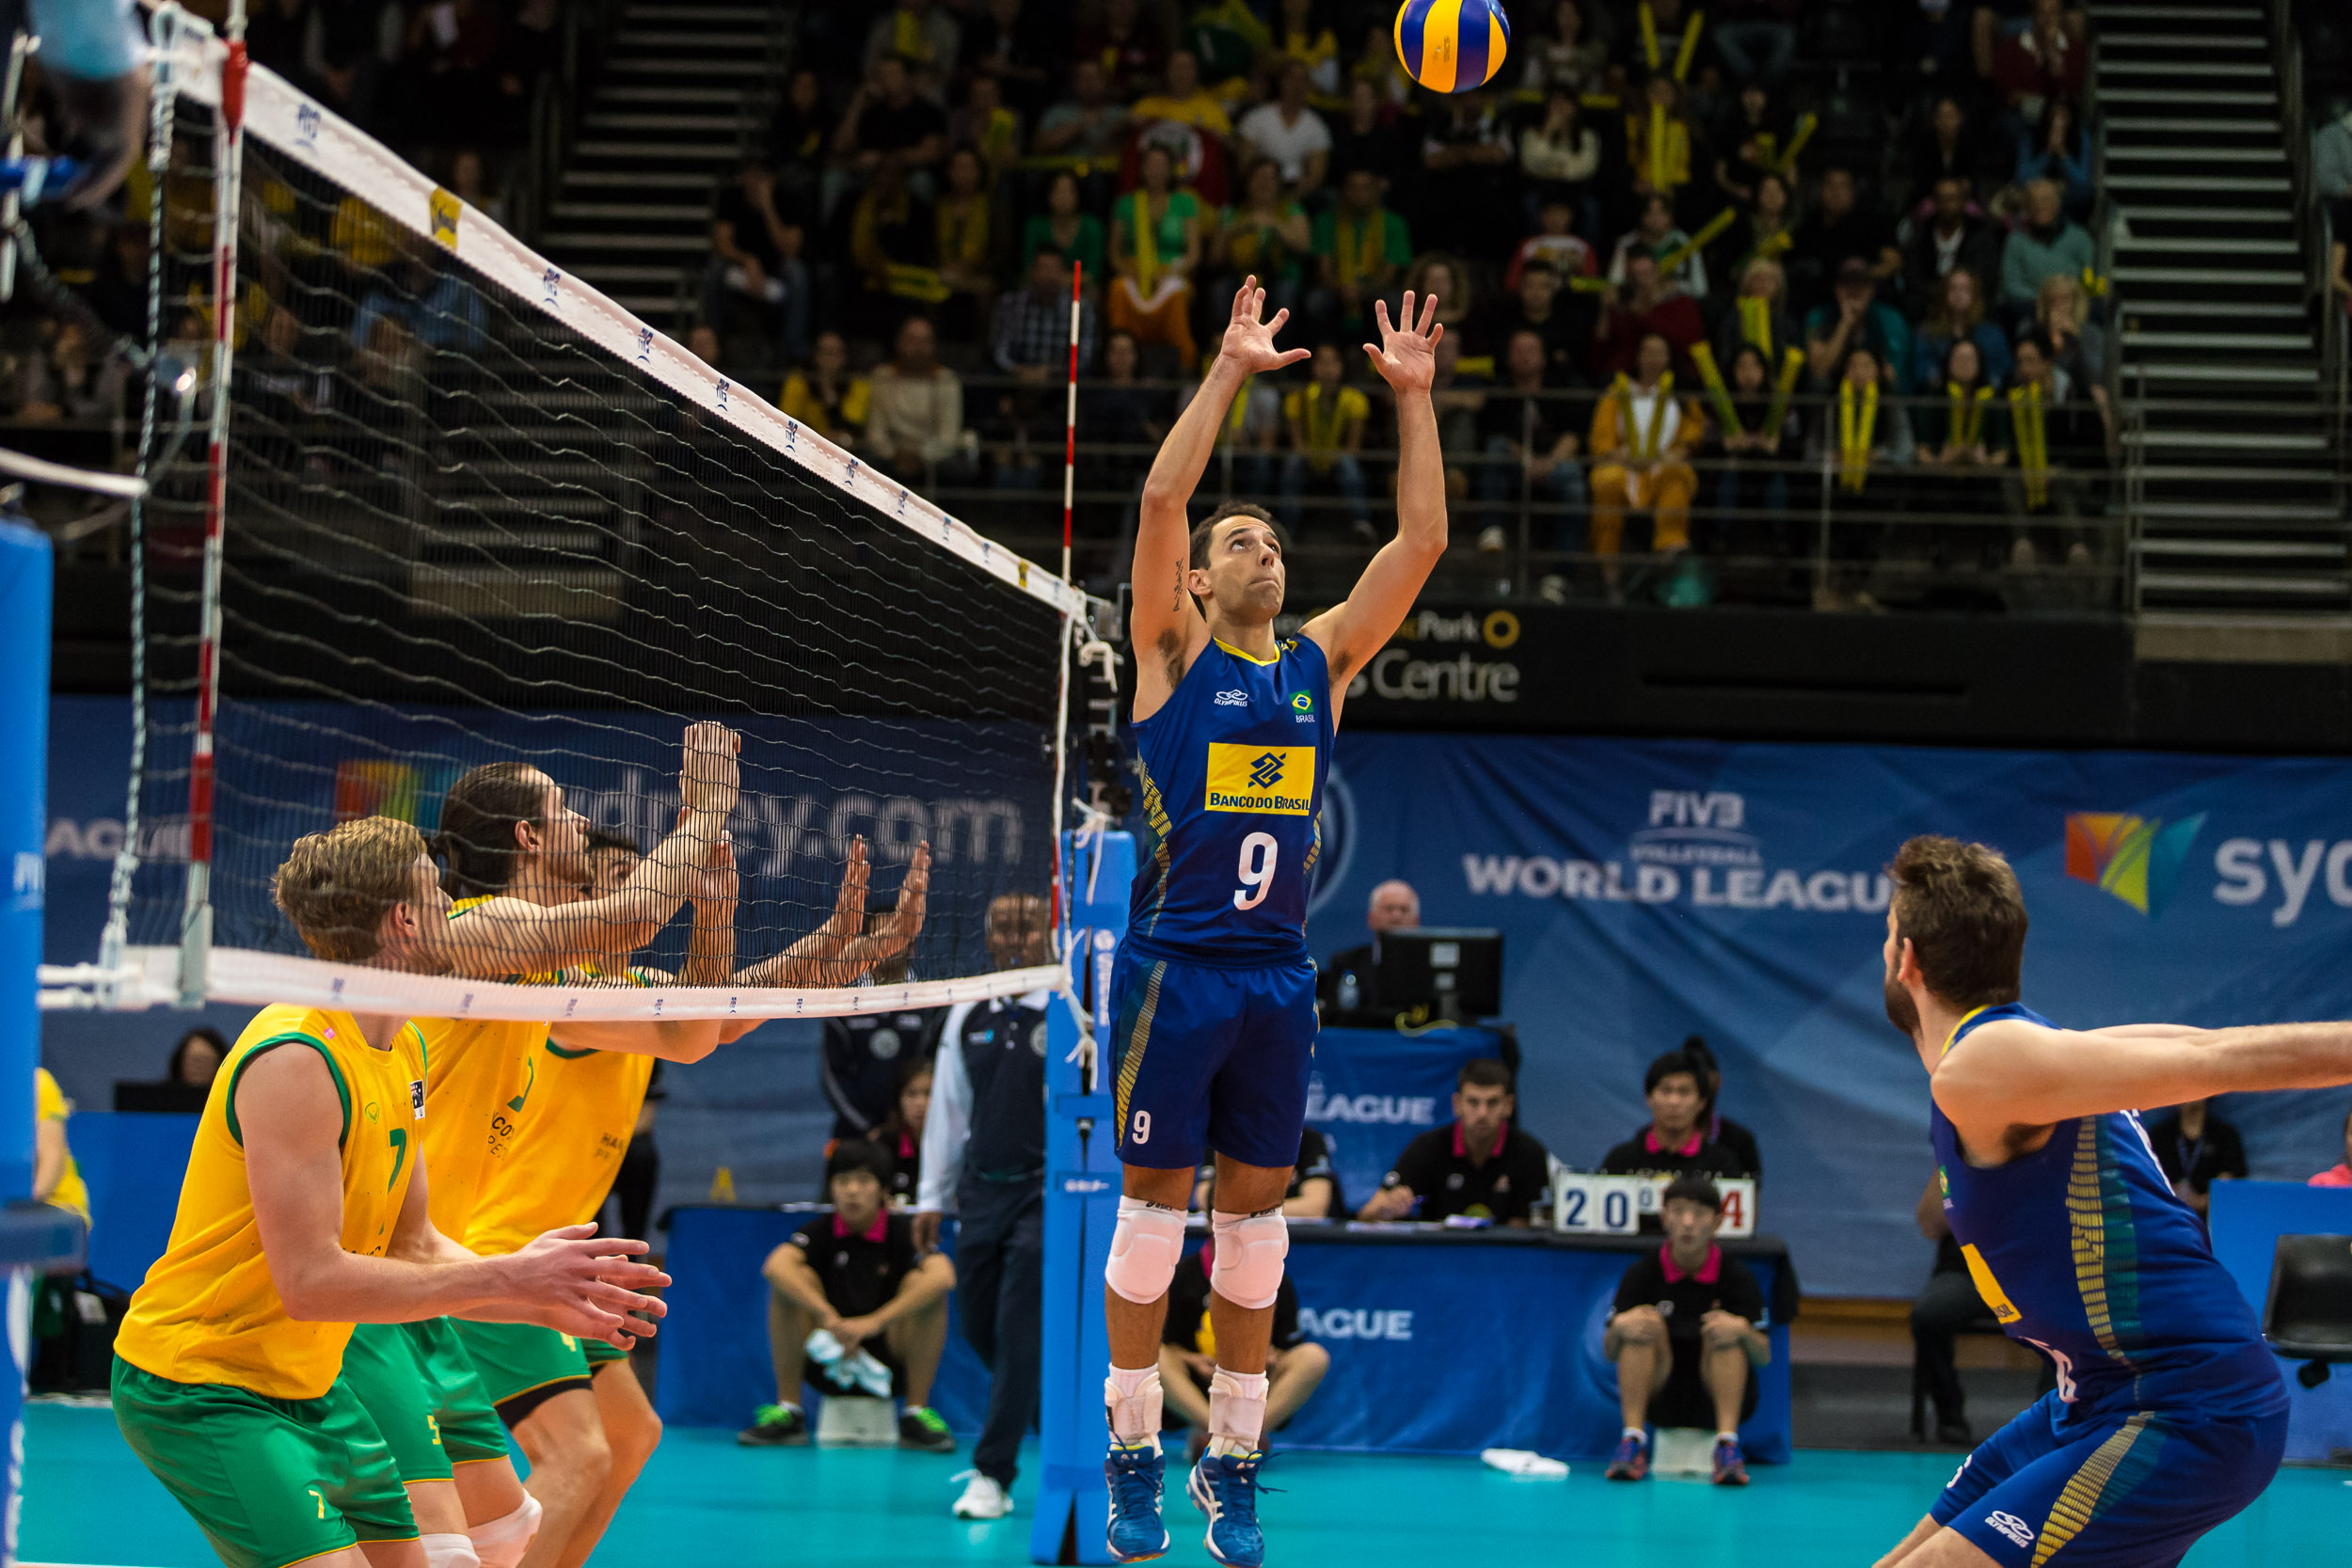 http://www.fivb.org/Vis2009/Images/GetImage.asmx?No=201486713&maxSize=960